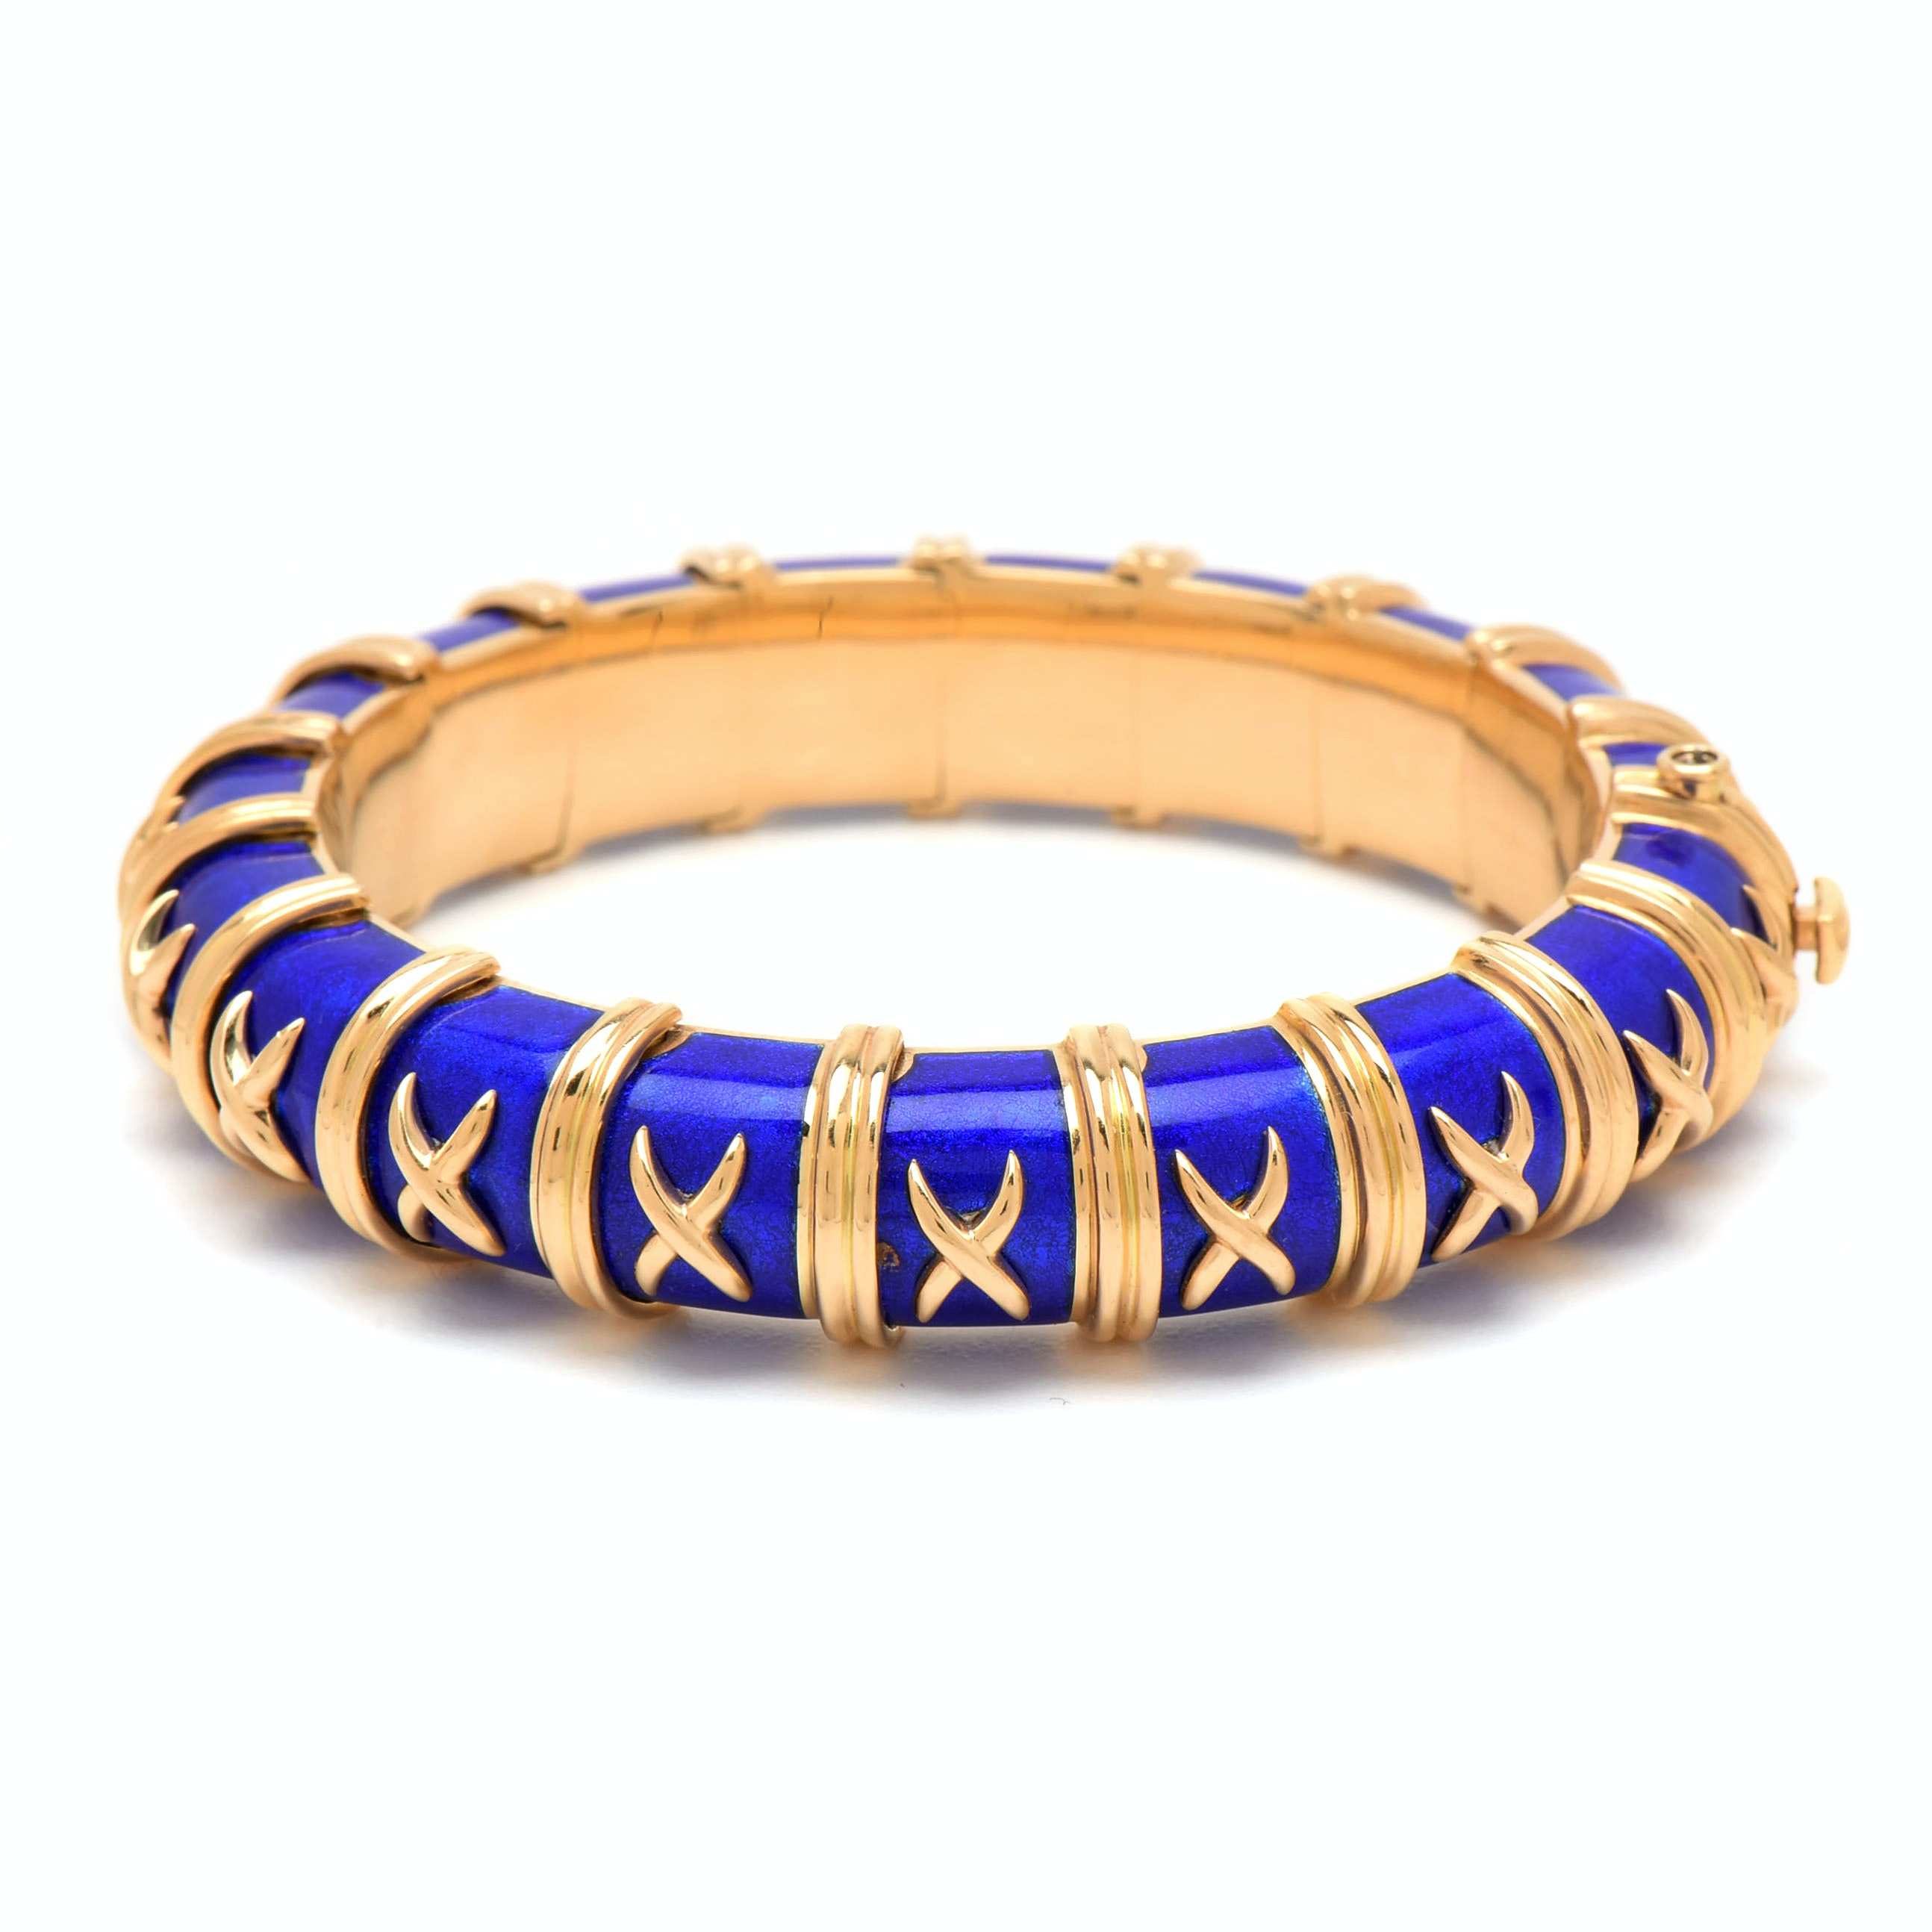 "Schlumberger for Tiffany & Co. ""Croisillon"" 18K Yellow Gold and Enamel Bracelet"